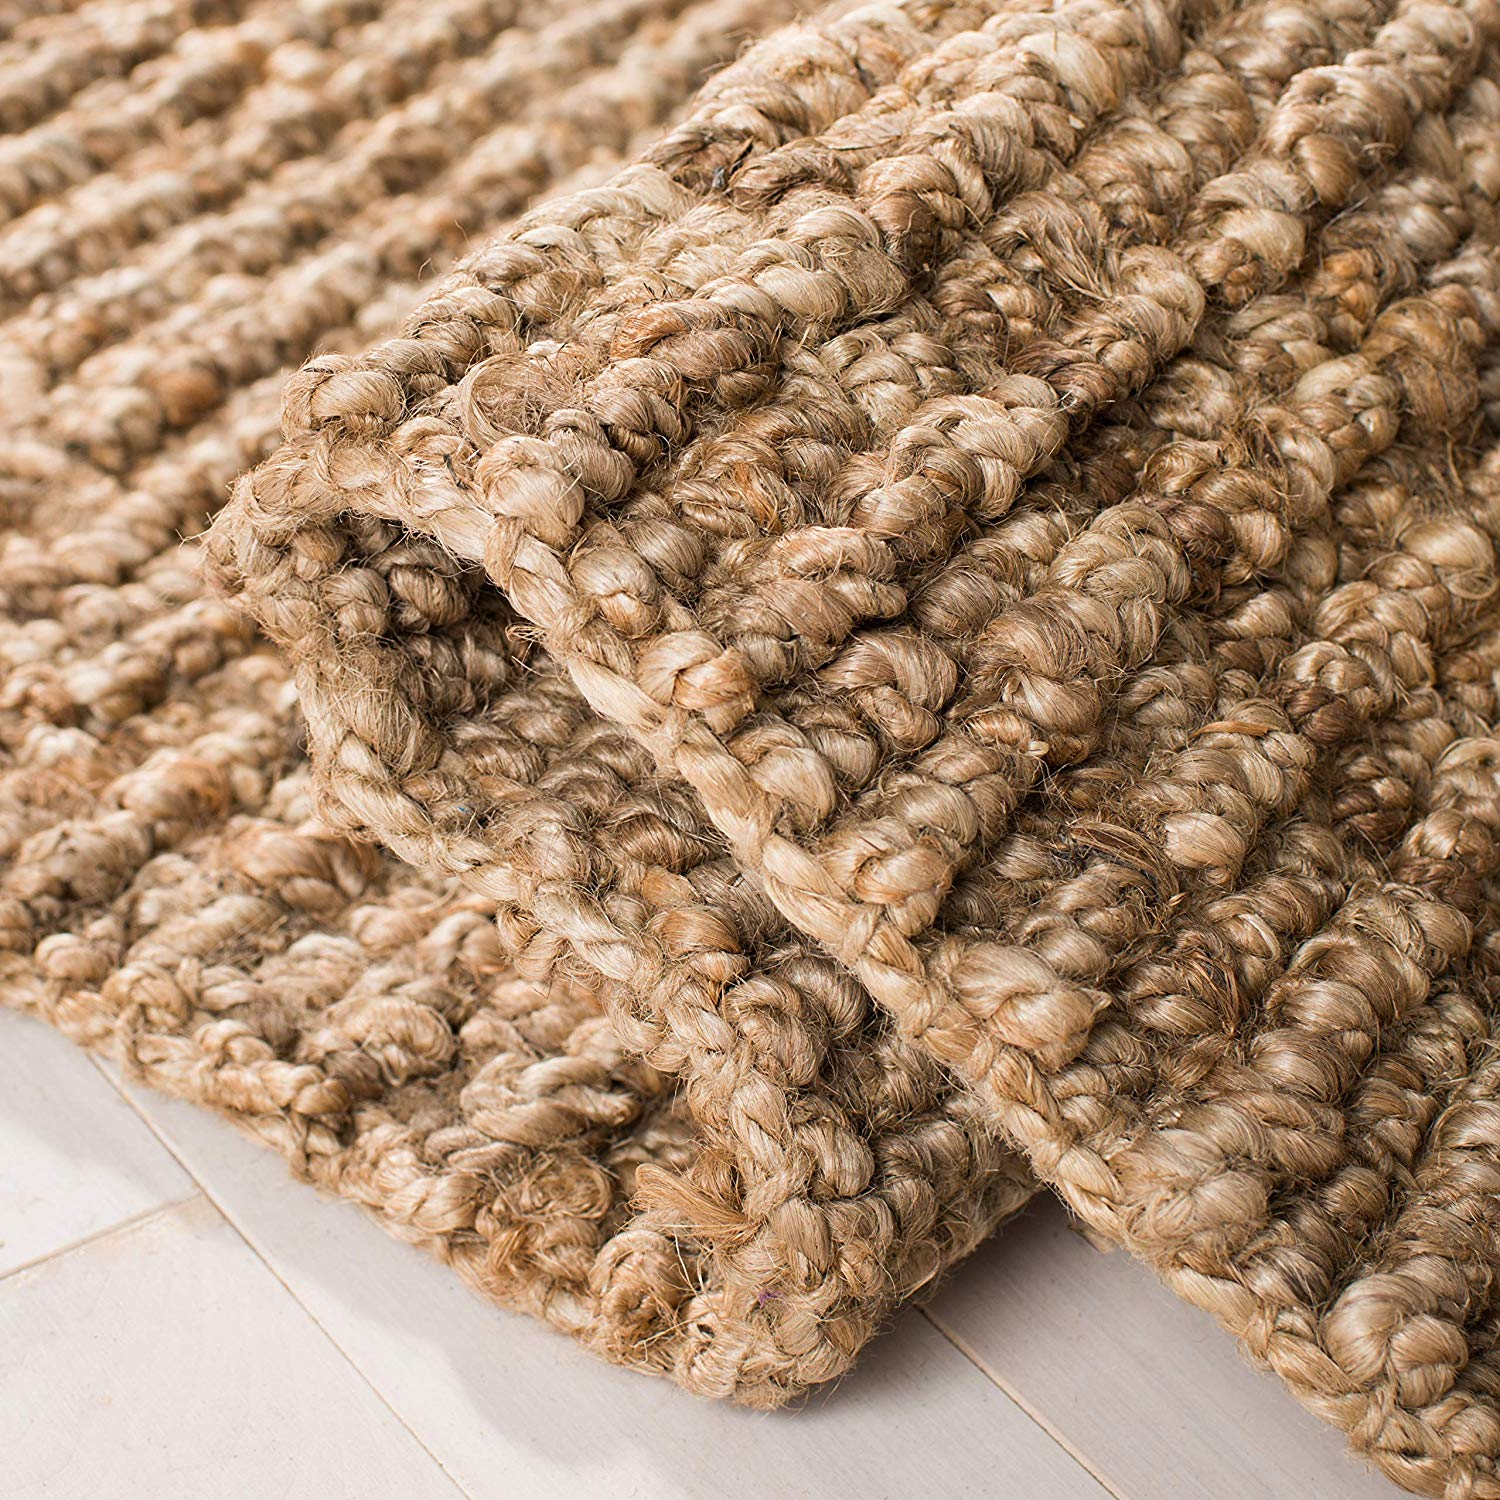 A hand-woven rugged Hemp-Rug or Sisal-Rug can help soften the floor